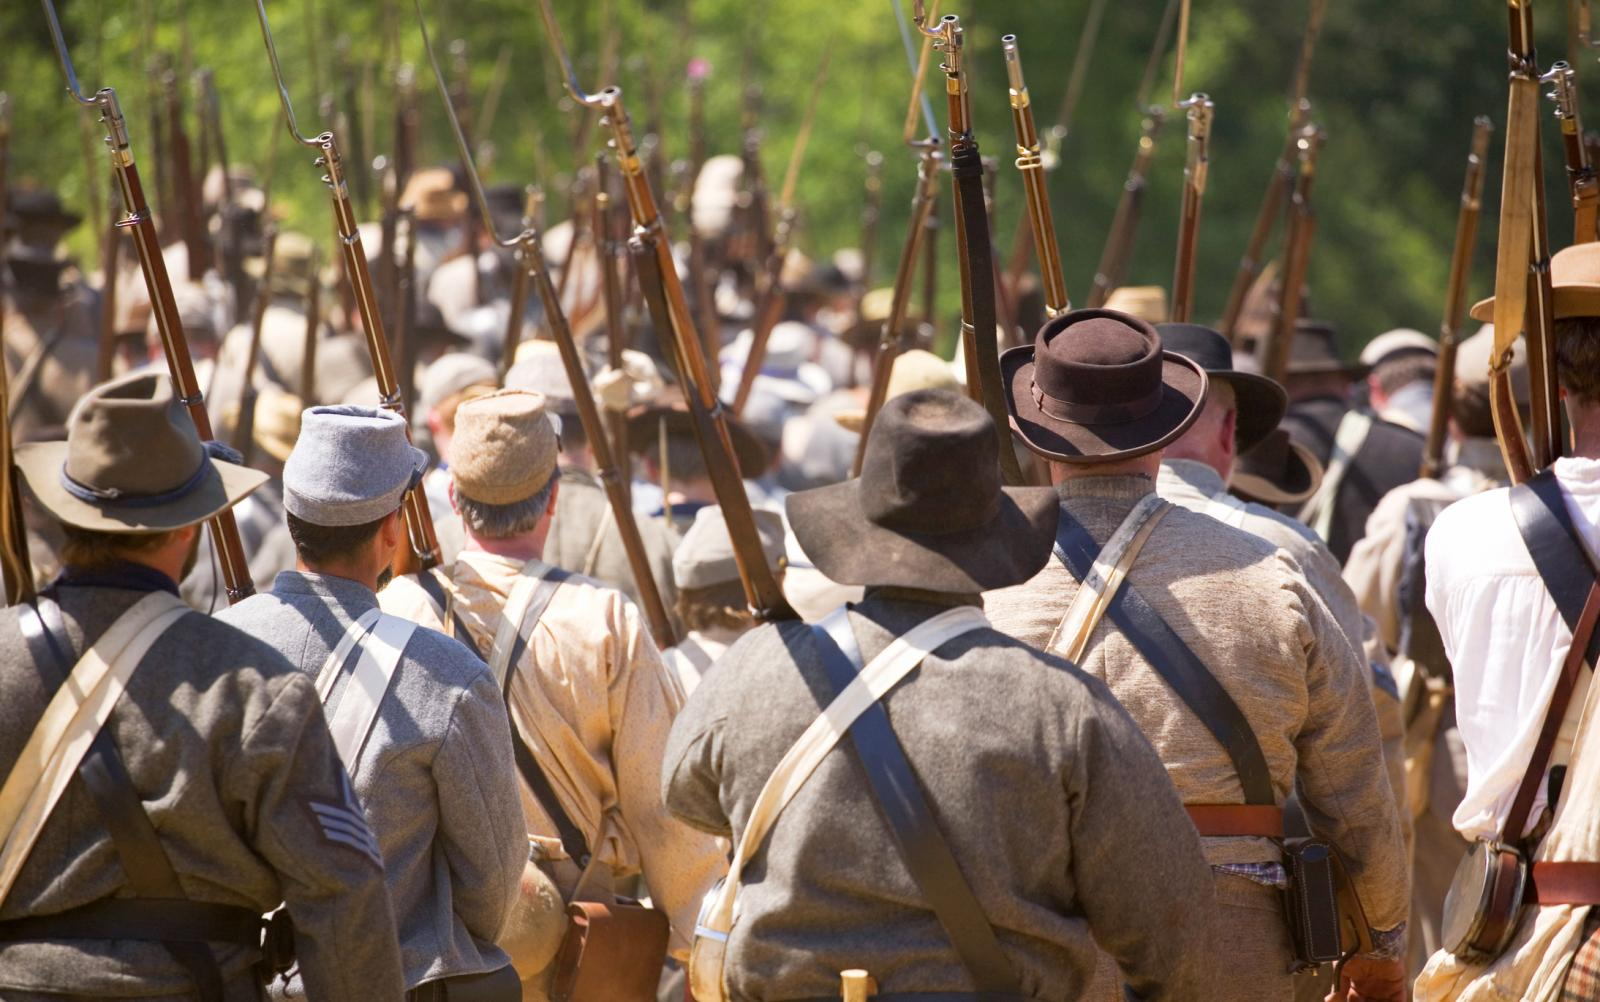 Confederate civil war soldiers marching